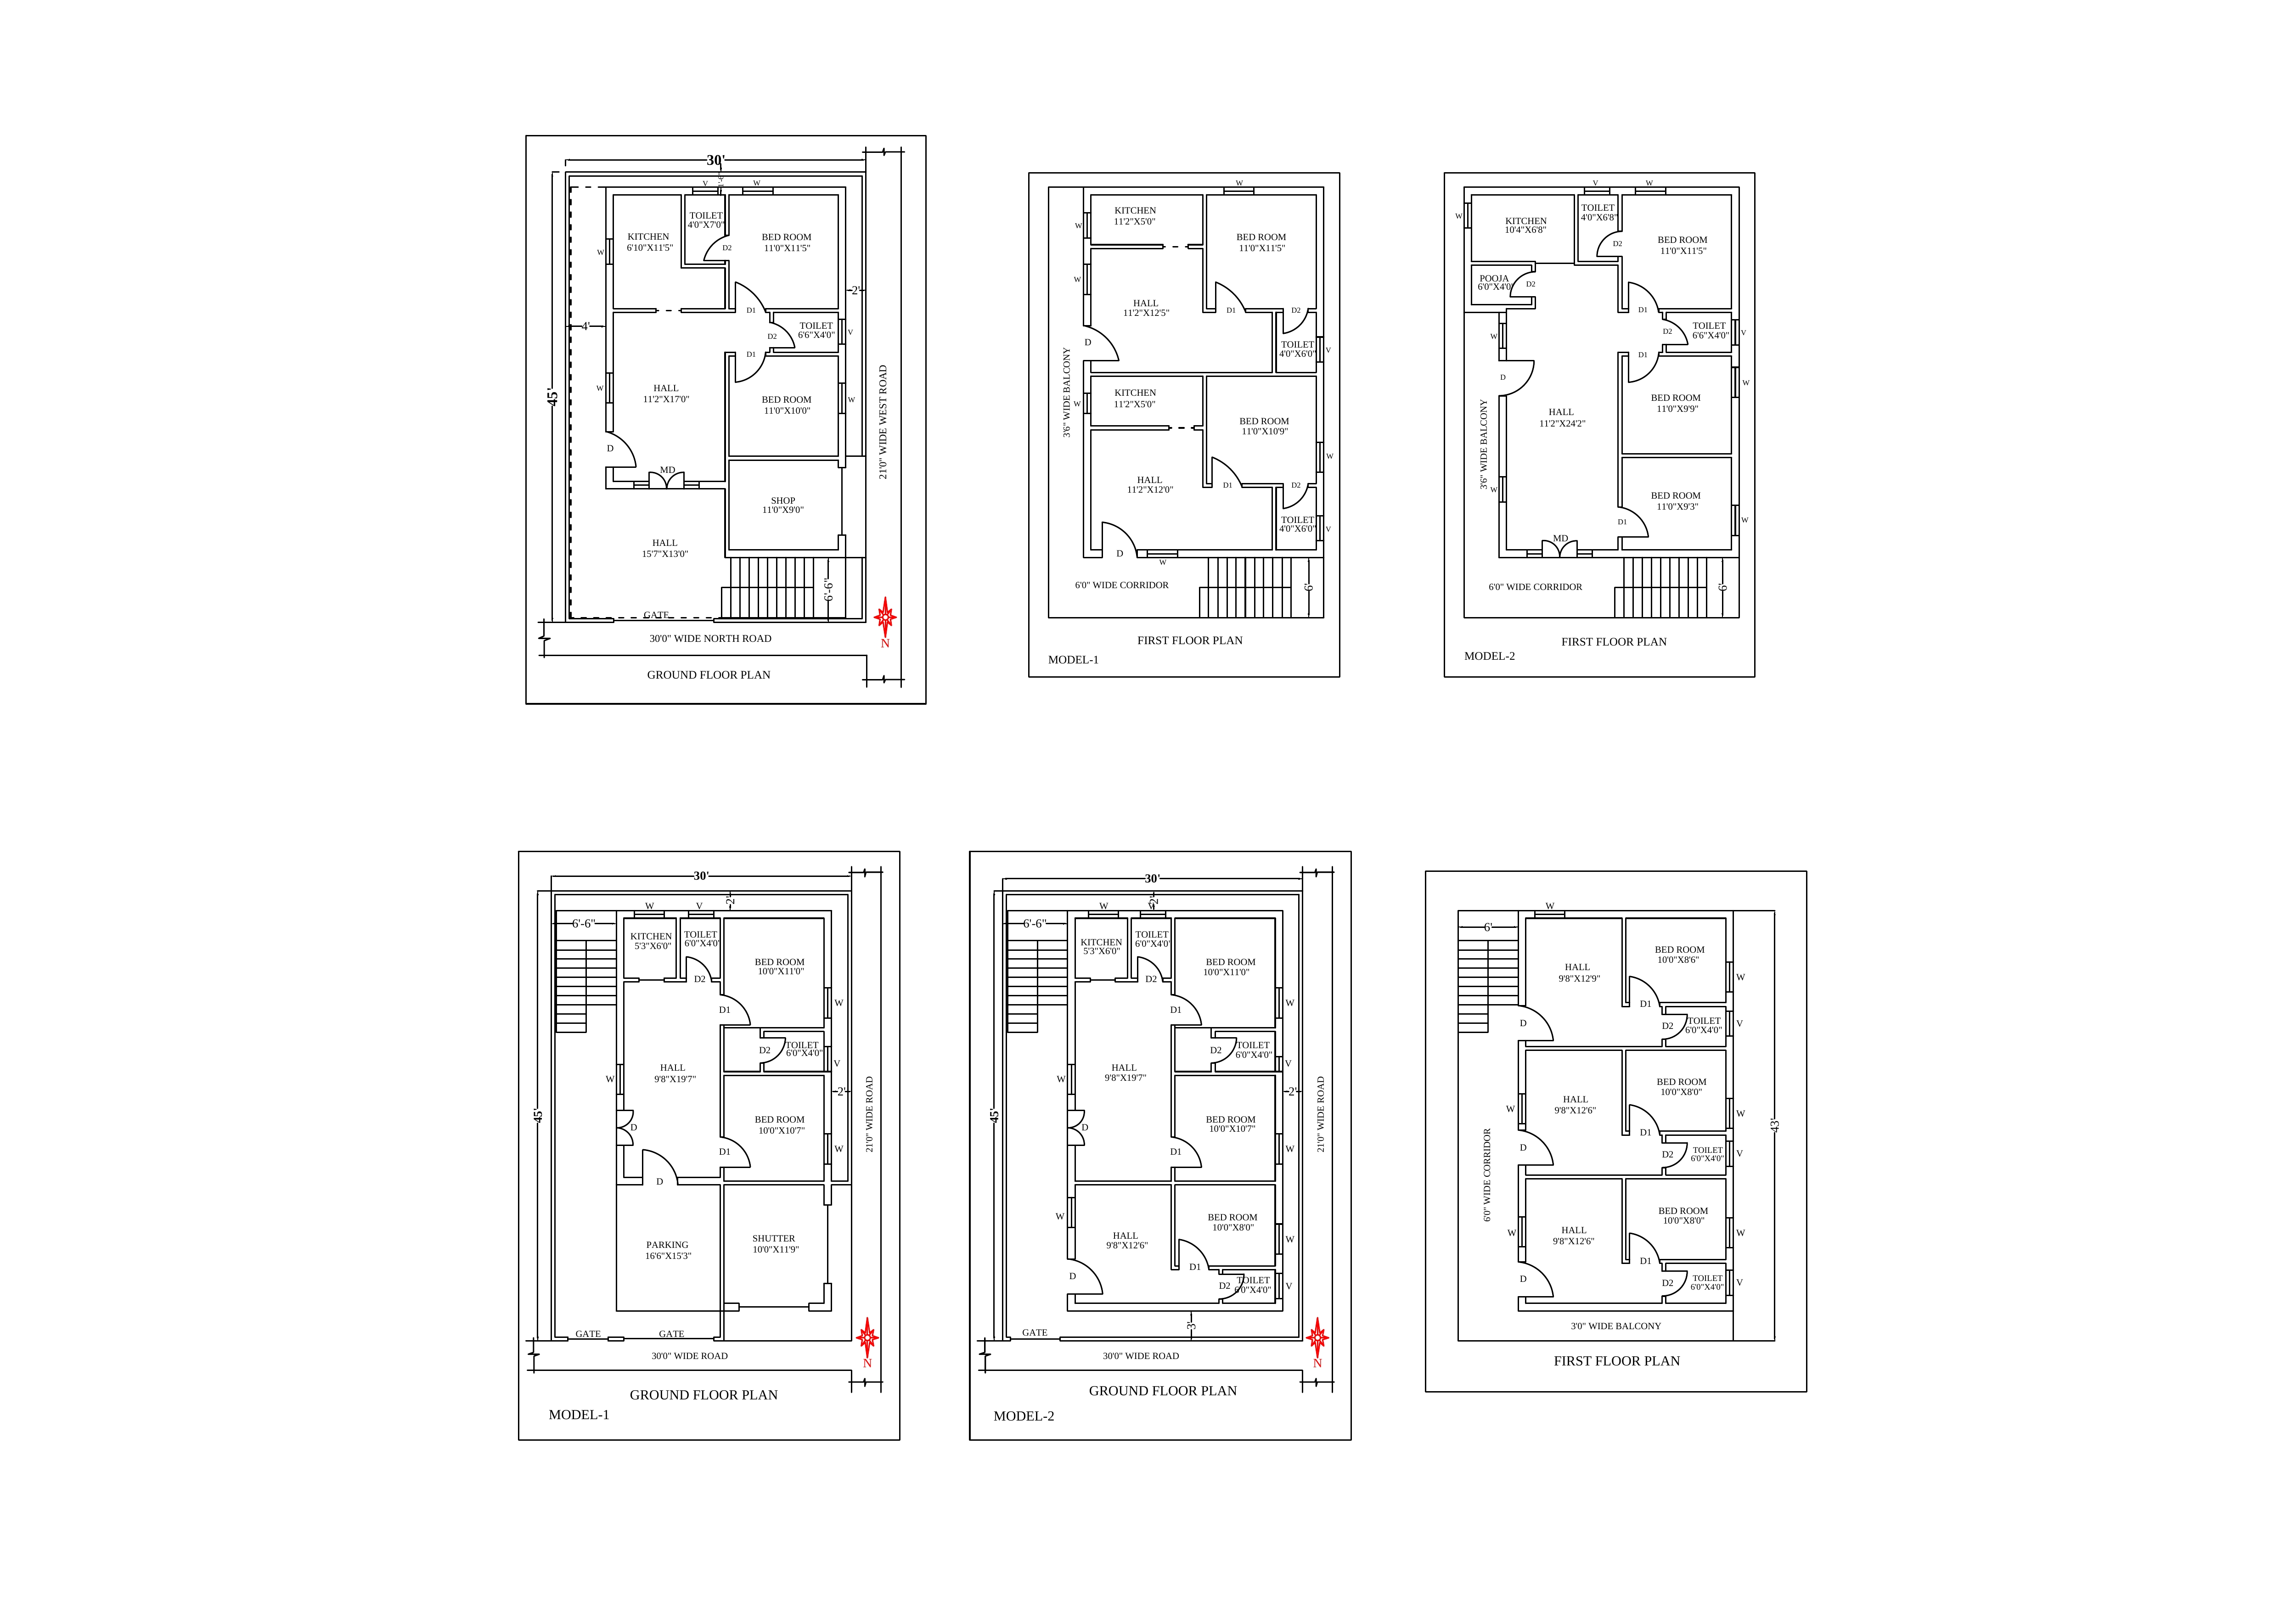 A sample building plan of ground floor and flirst floor in 150 SQY